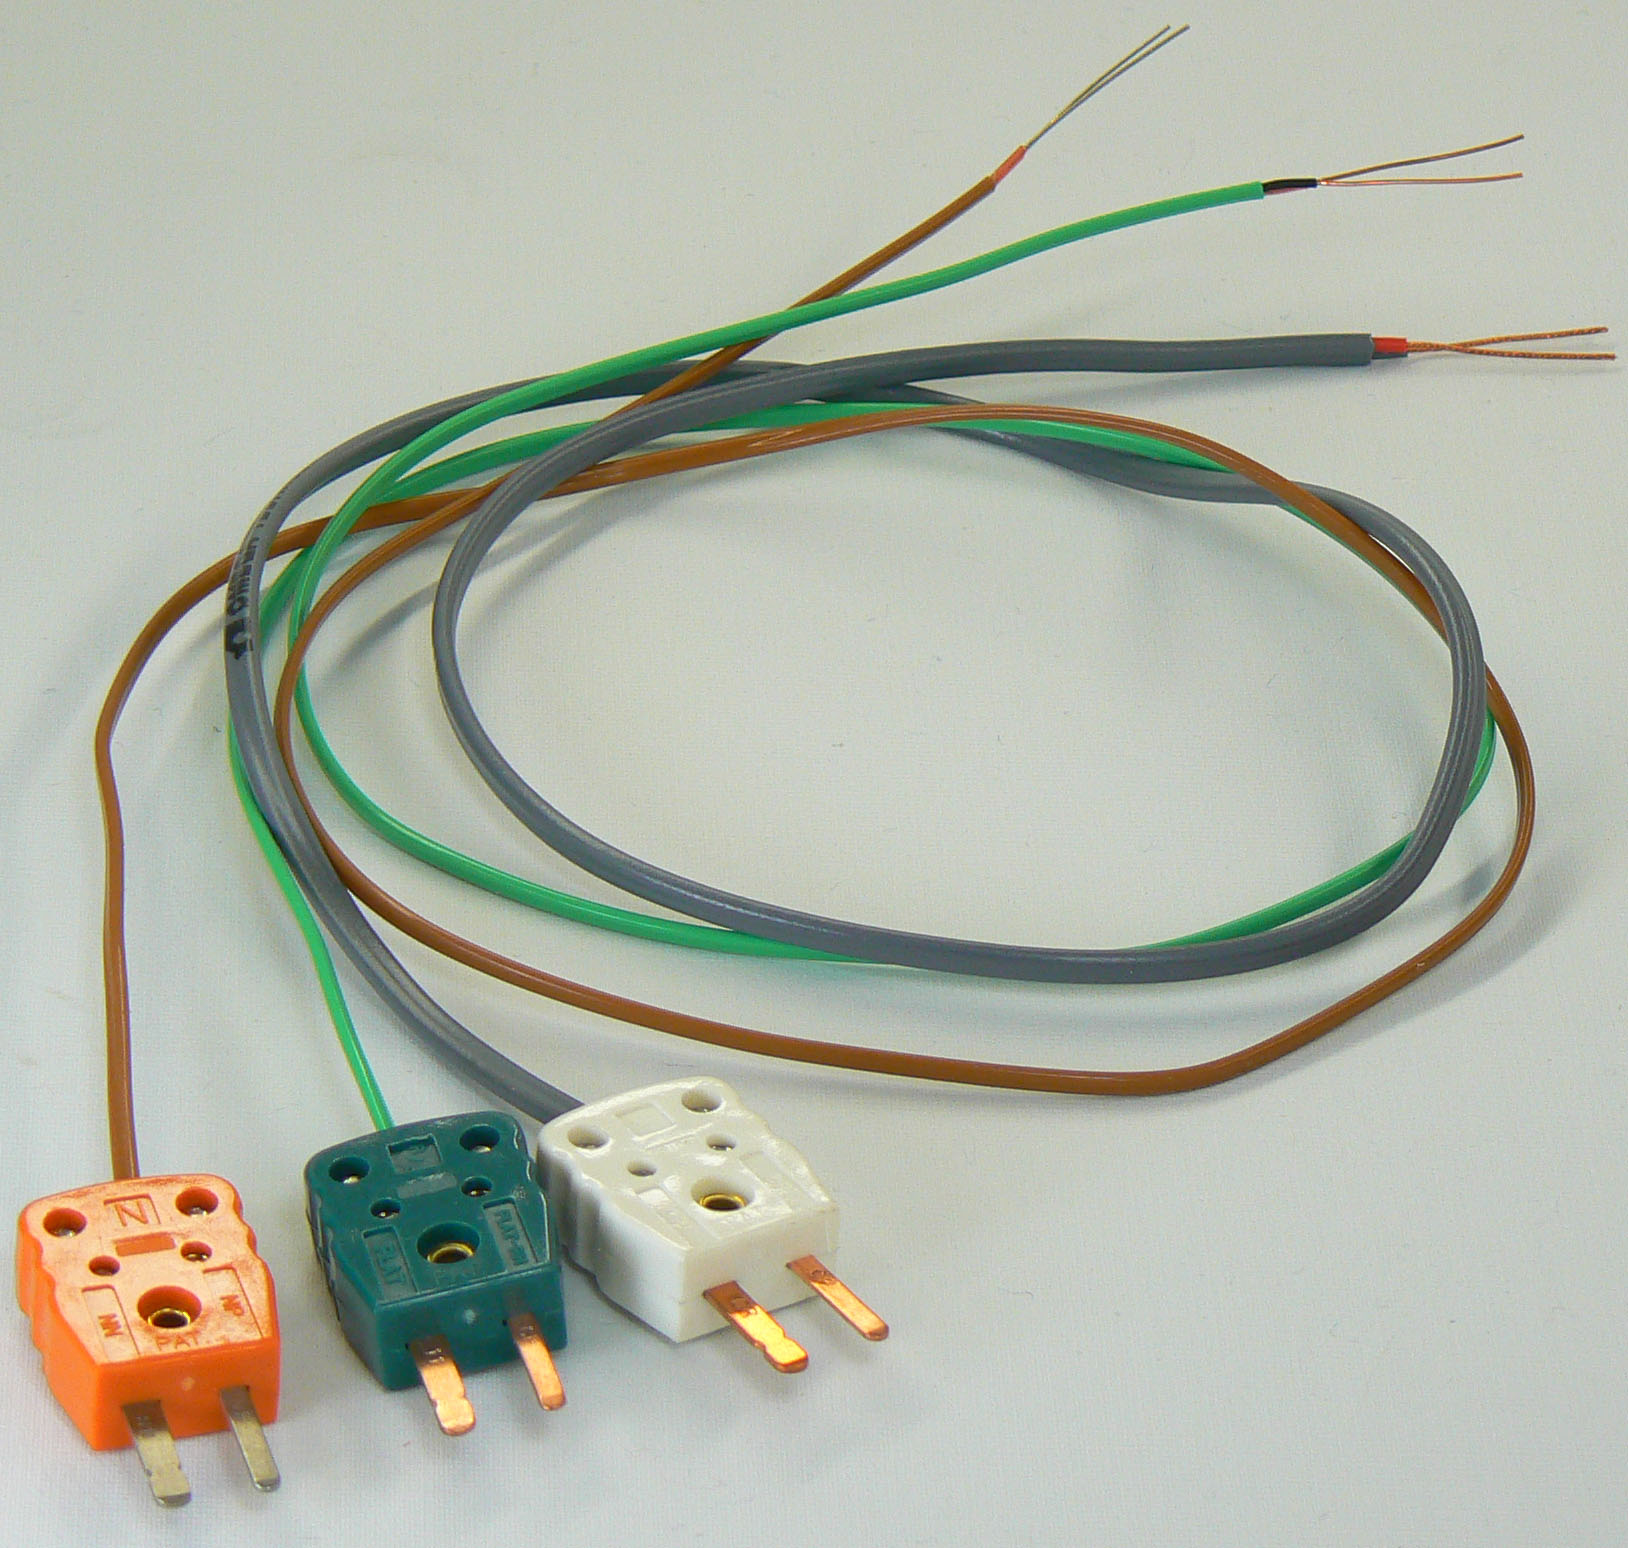 PIE 020-0203 Thermocouple Wire Kit for Types B, R/S & N.